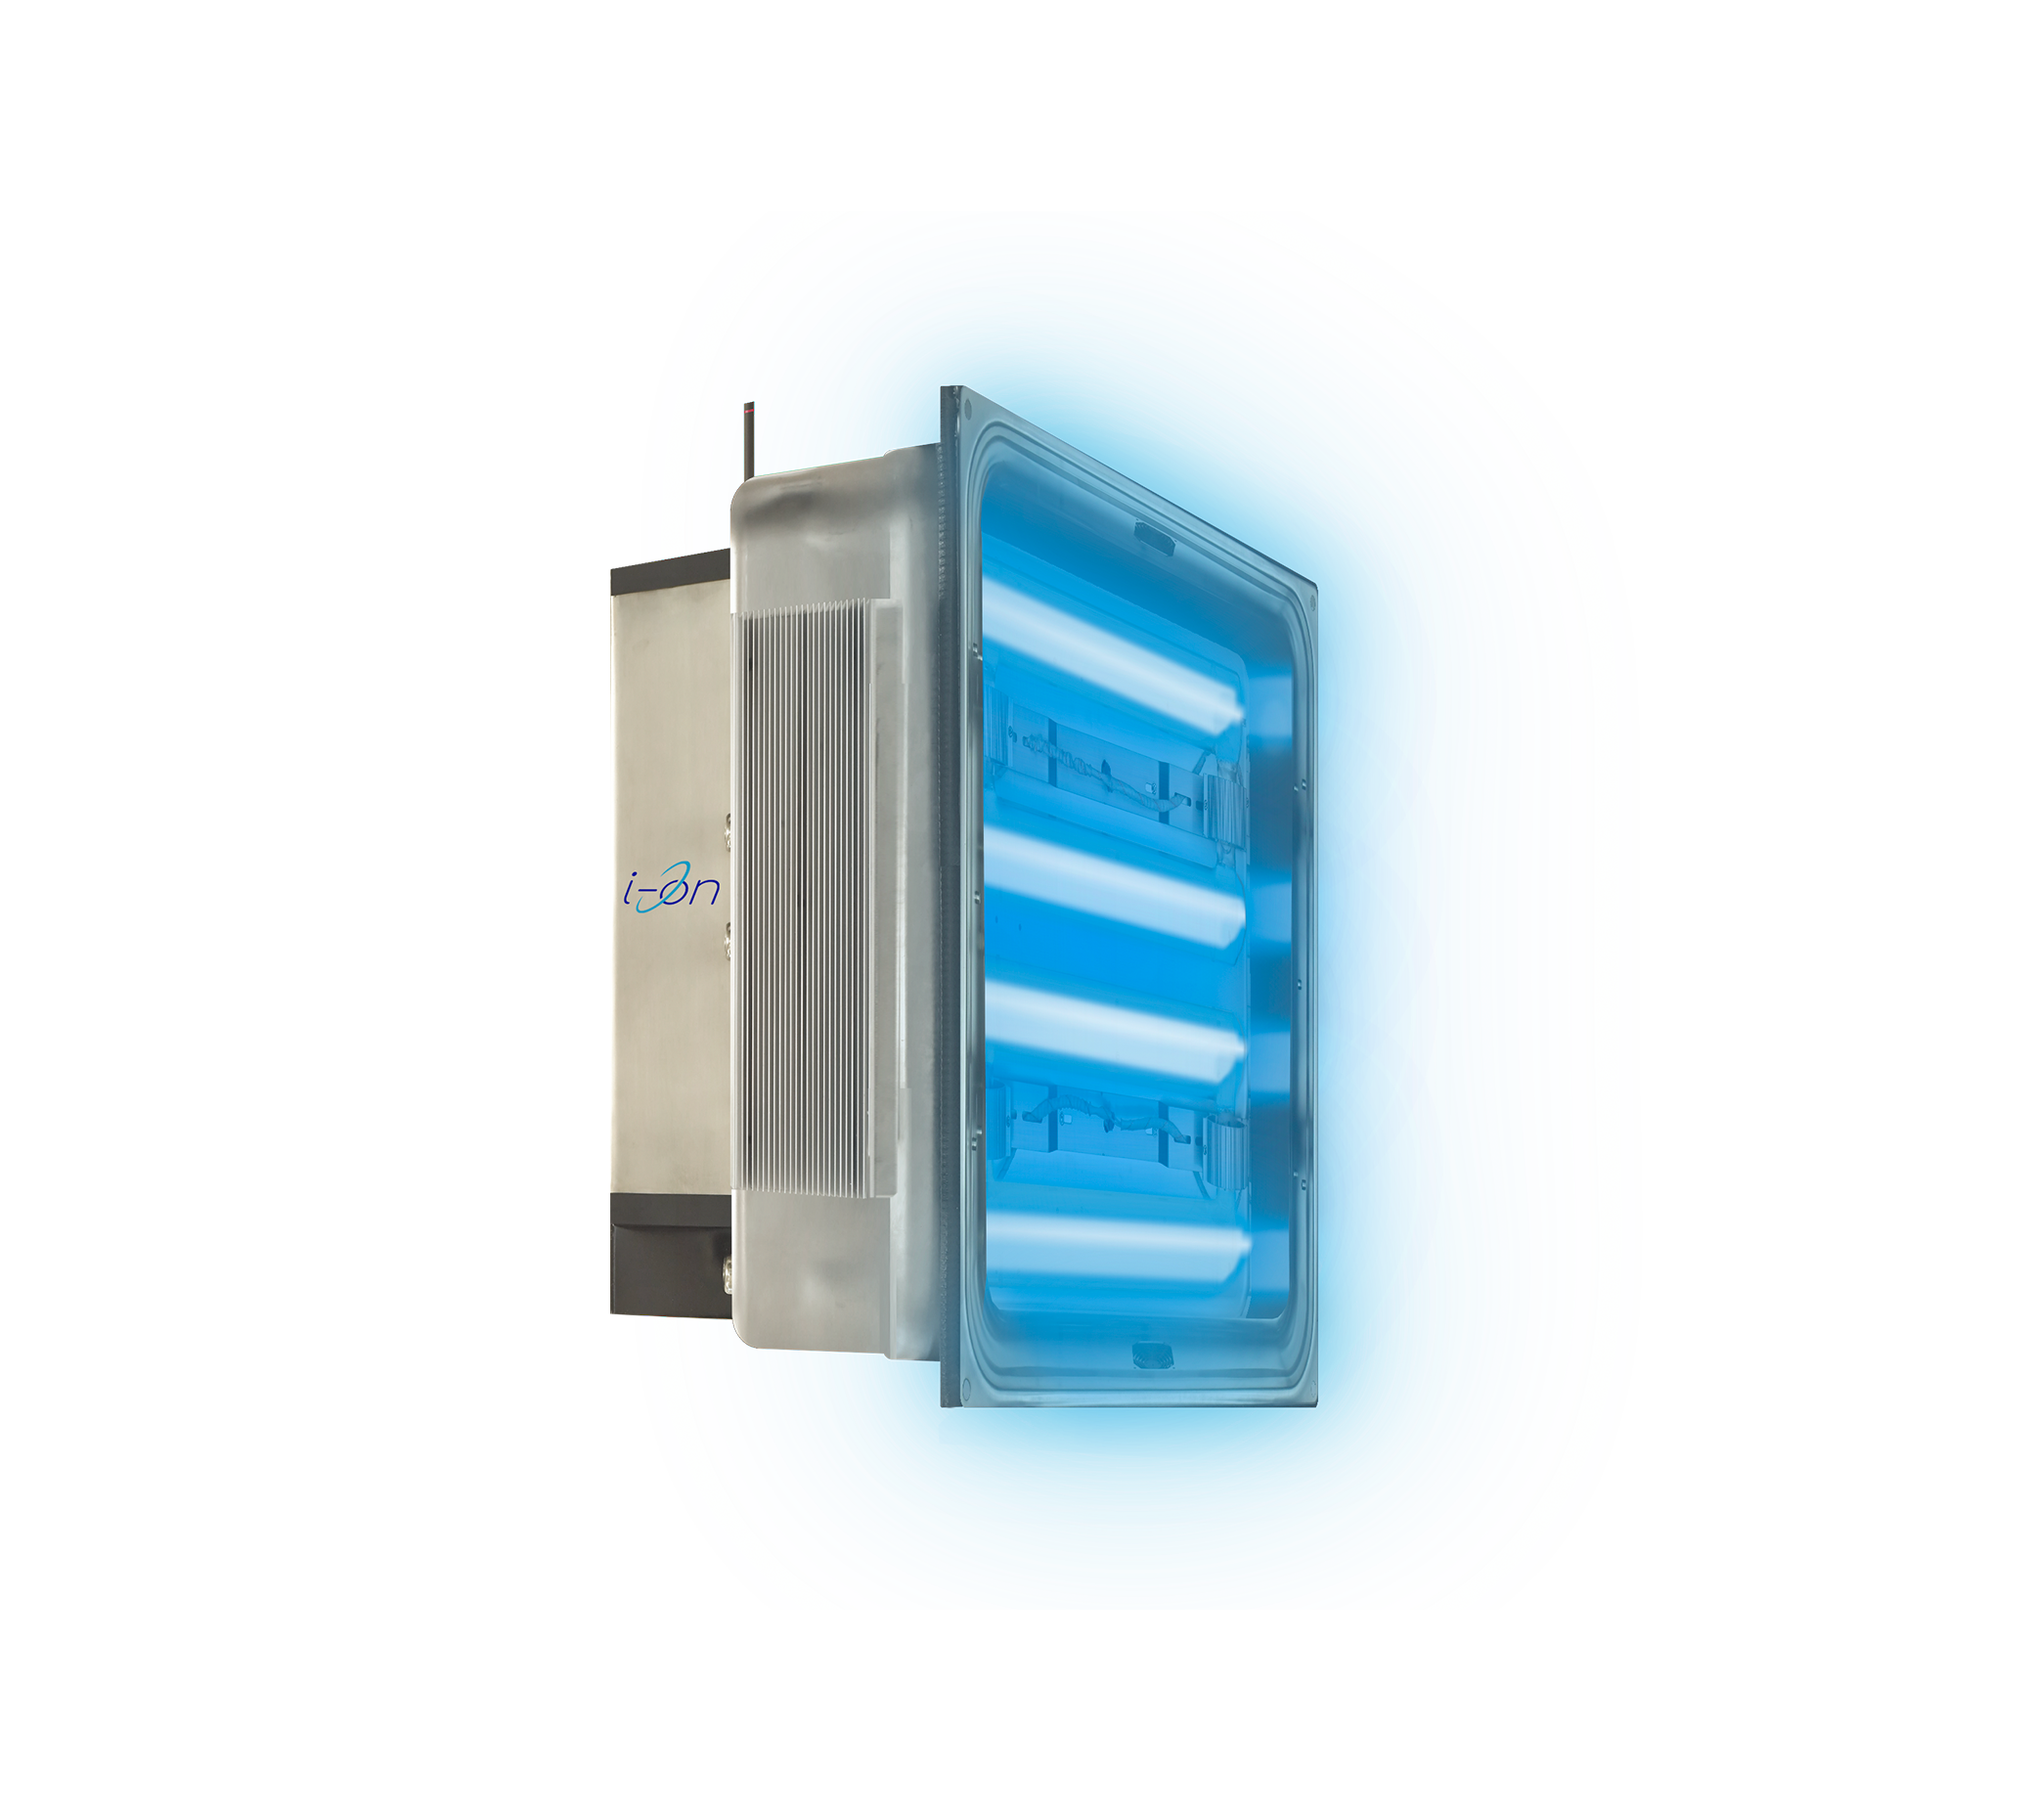 I-ON-Air Smart Ultraviolet Disinfection of Air